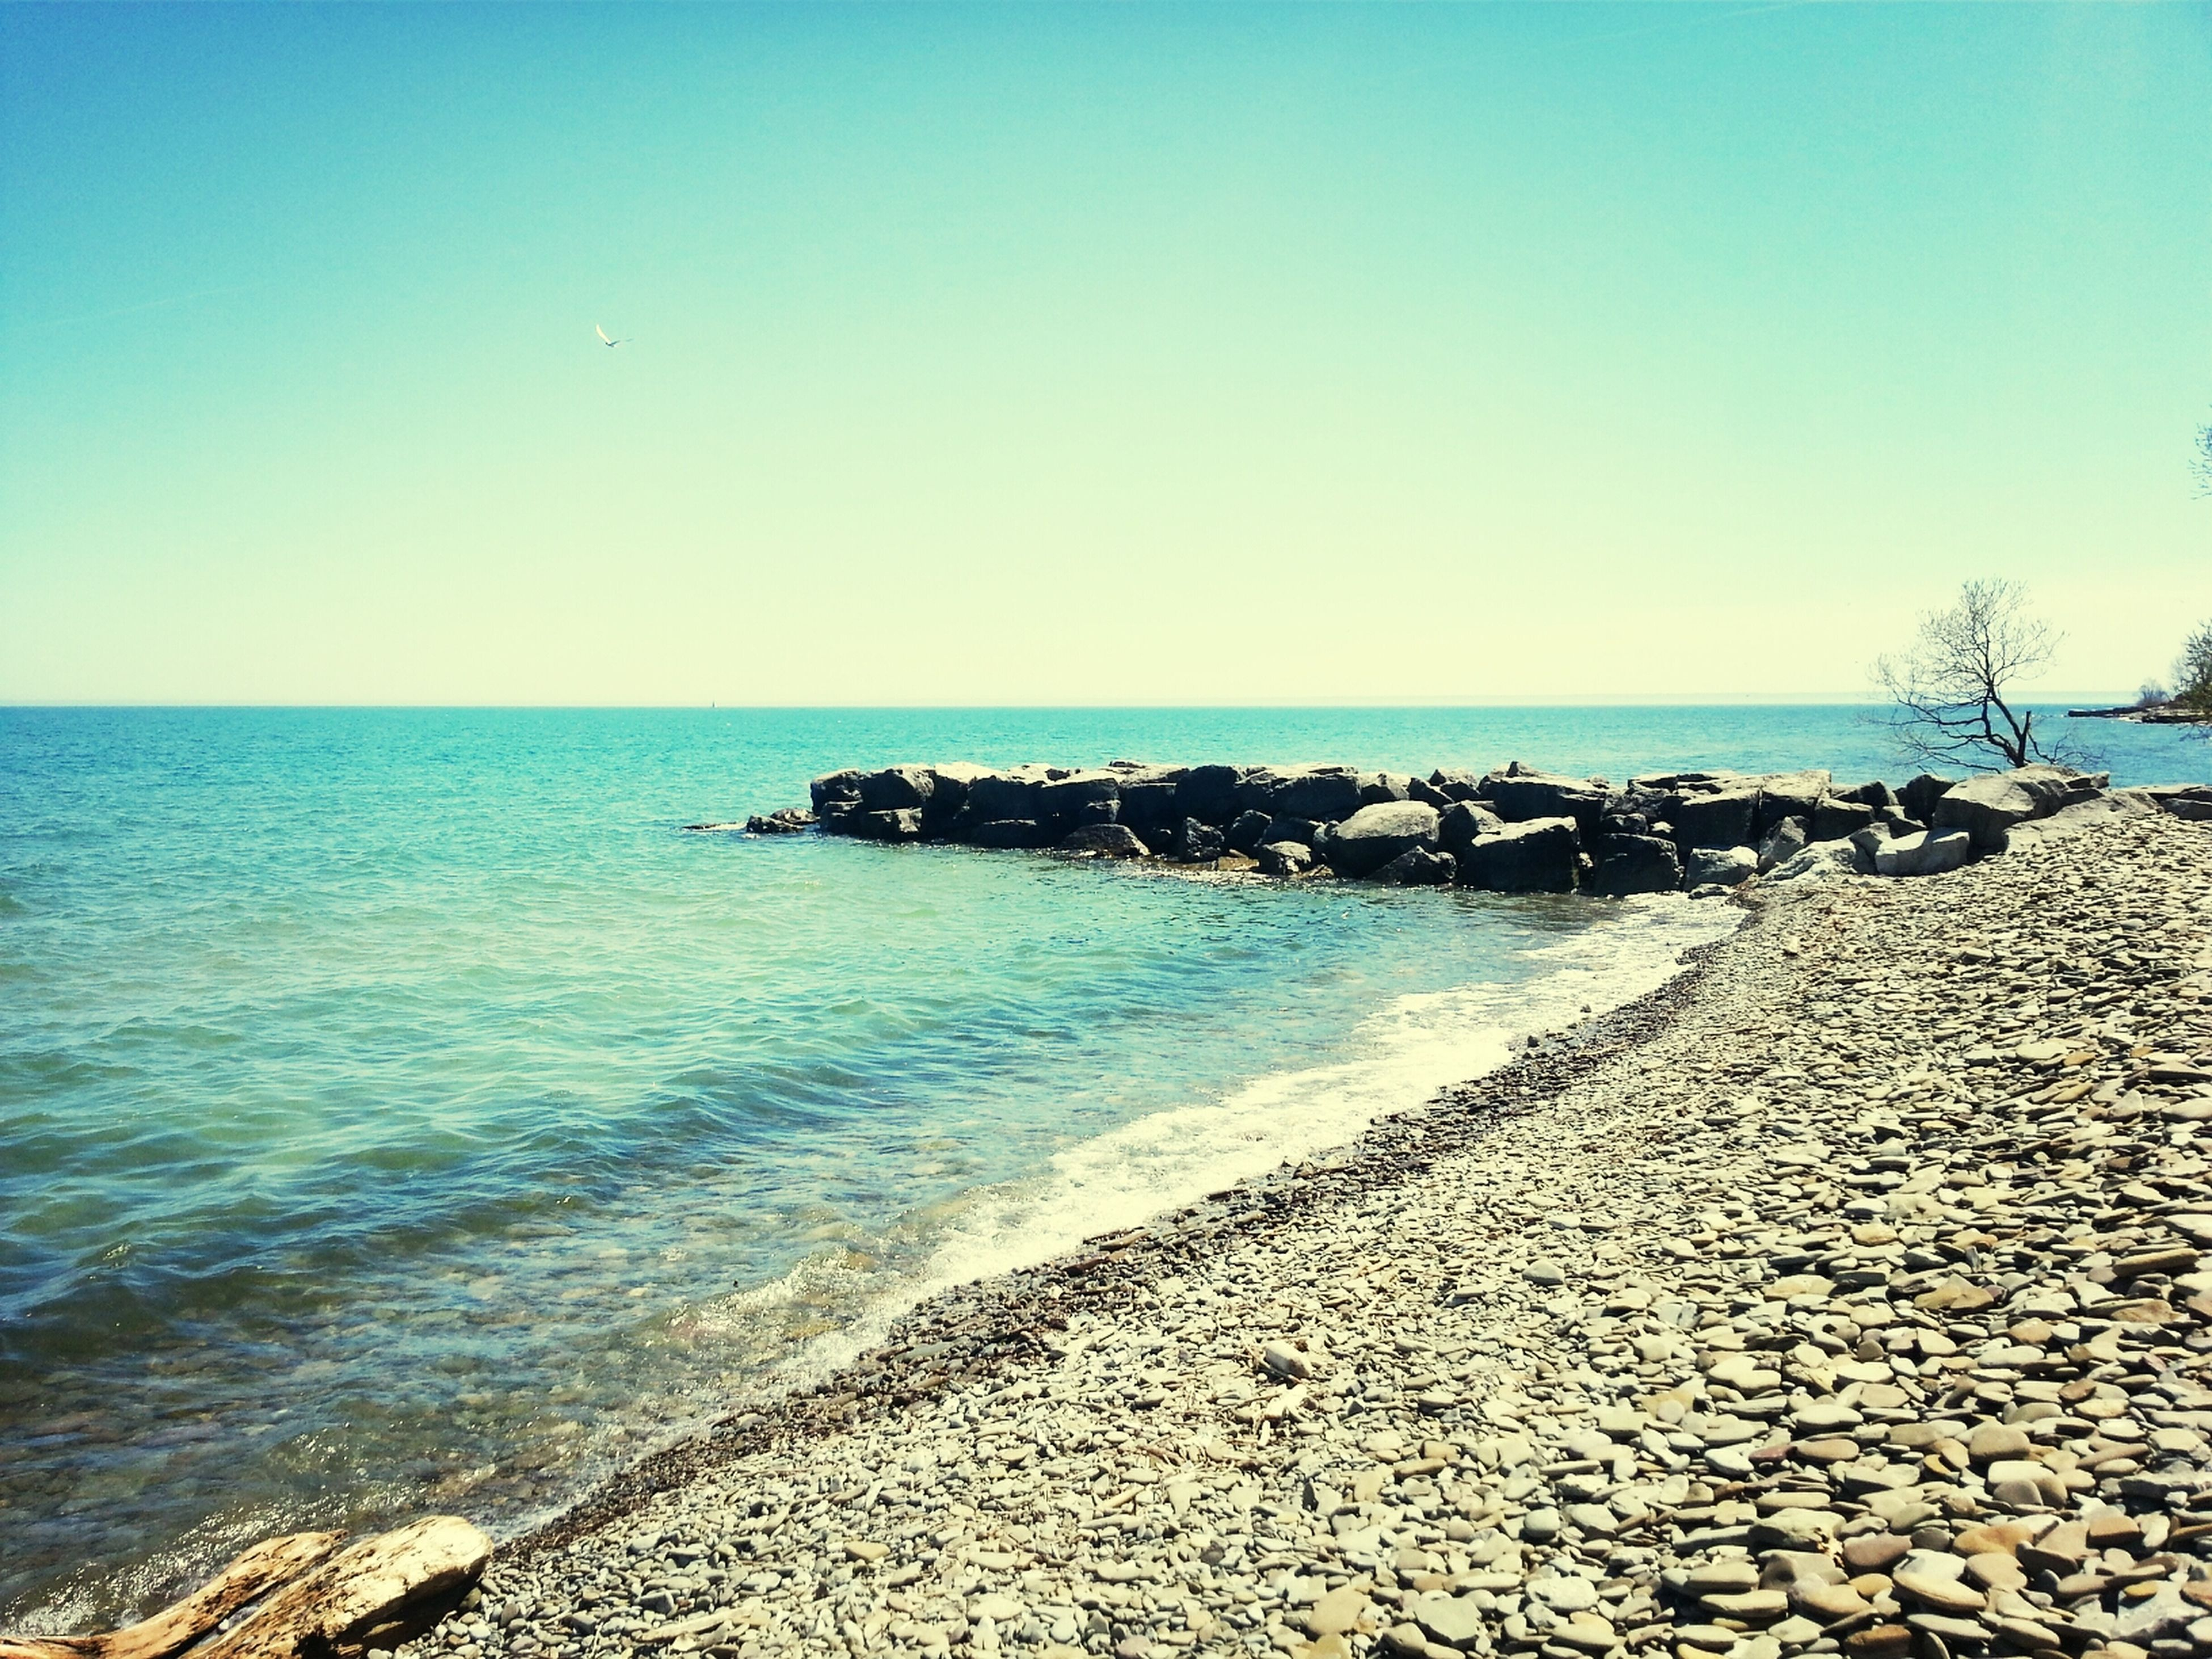 sea, horizon over water, water, clear sky, beach, blue, copy space, tranquil scene, tranquility, scenics, shore, beauty in nature, nature, sand, rock - object, idyllic, coastline, day, outdoors, sunlight